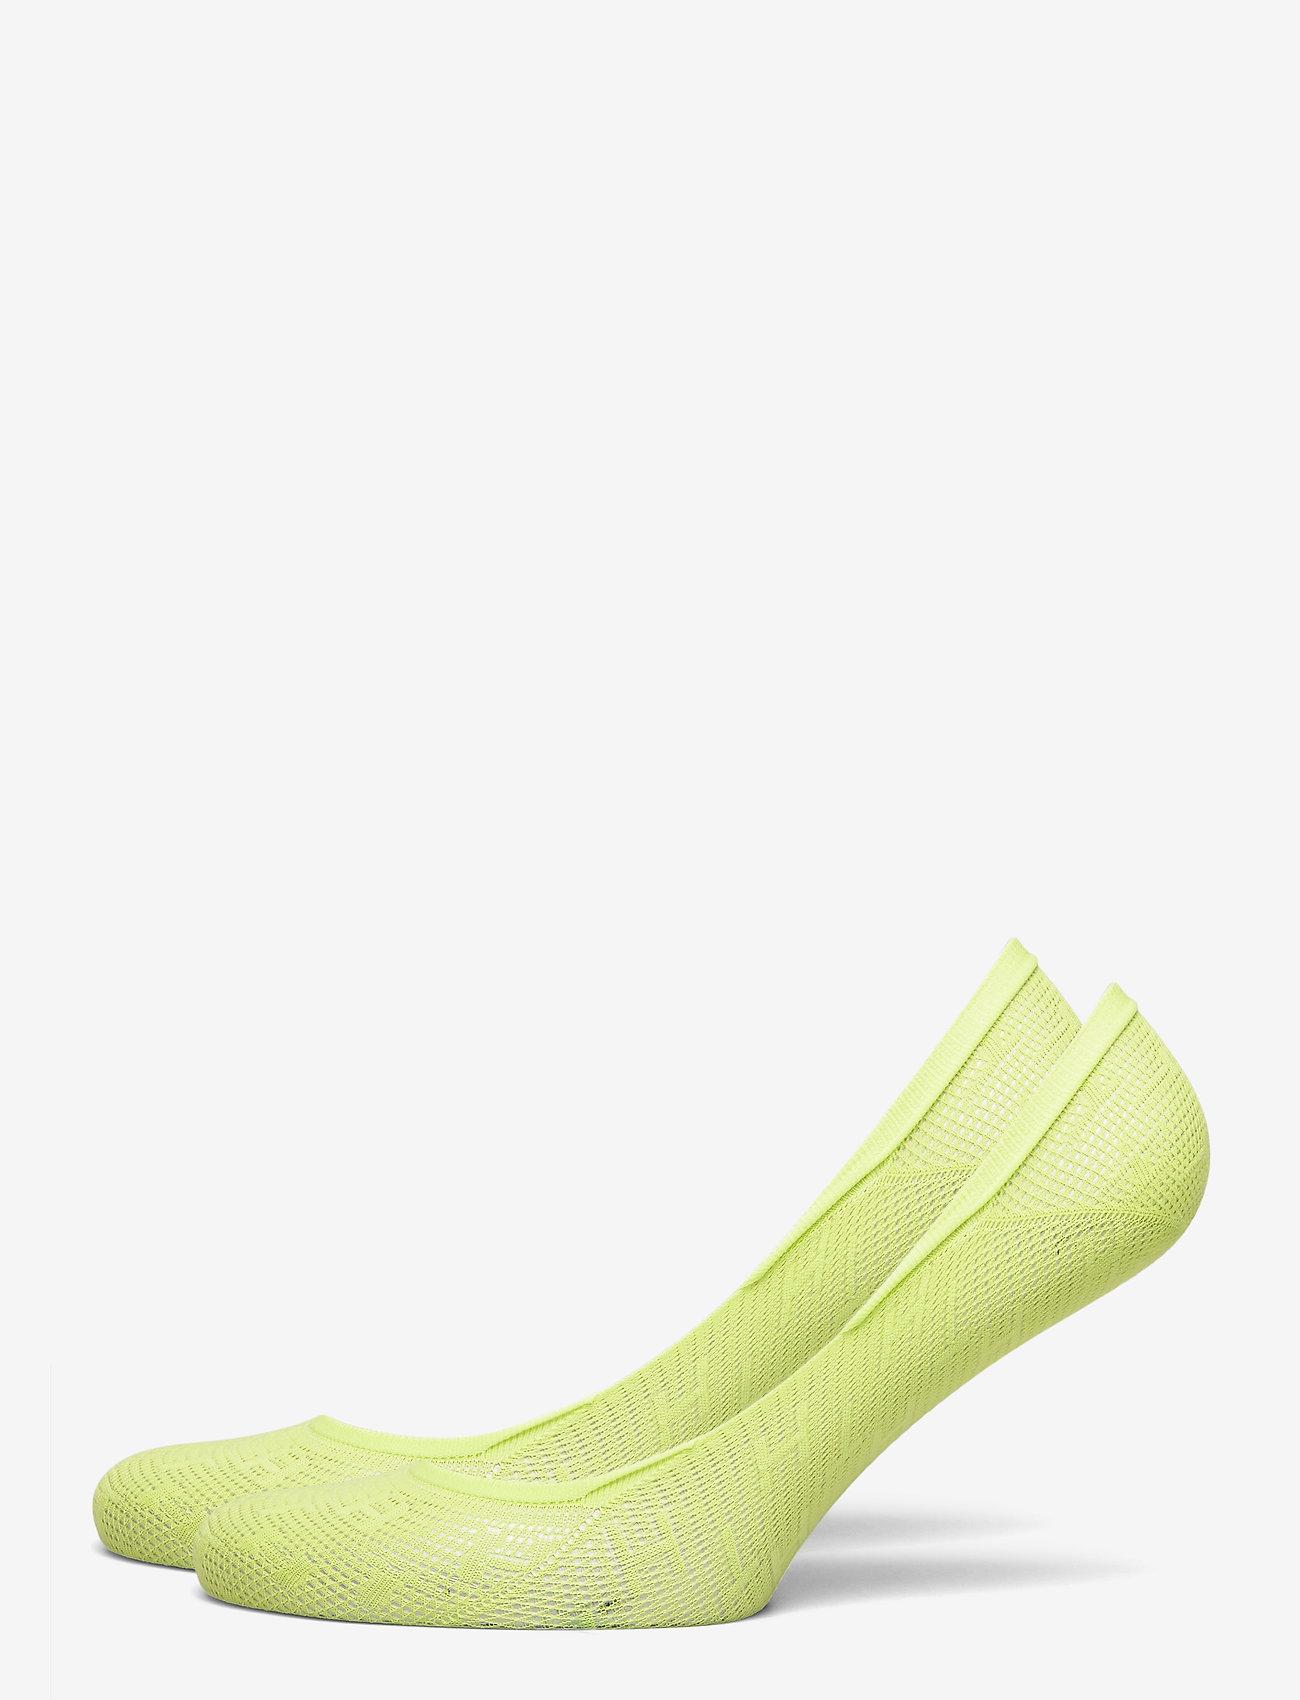 Tommy Hilfiger - TH WOMEN FOOTIE 2P TH BURN OUT - footies - lime - 0